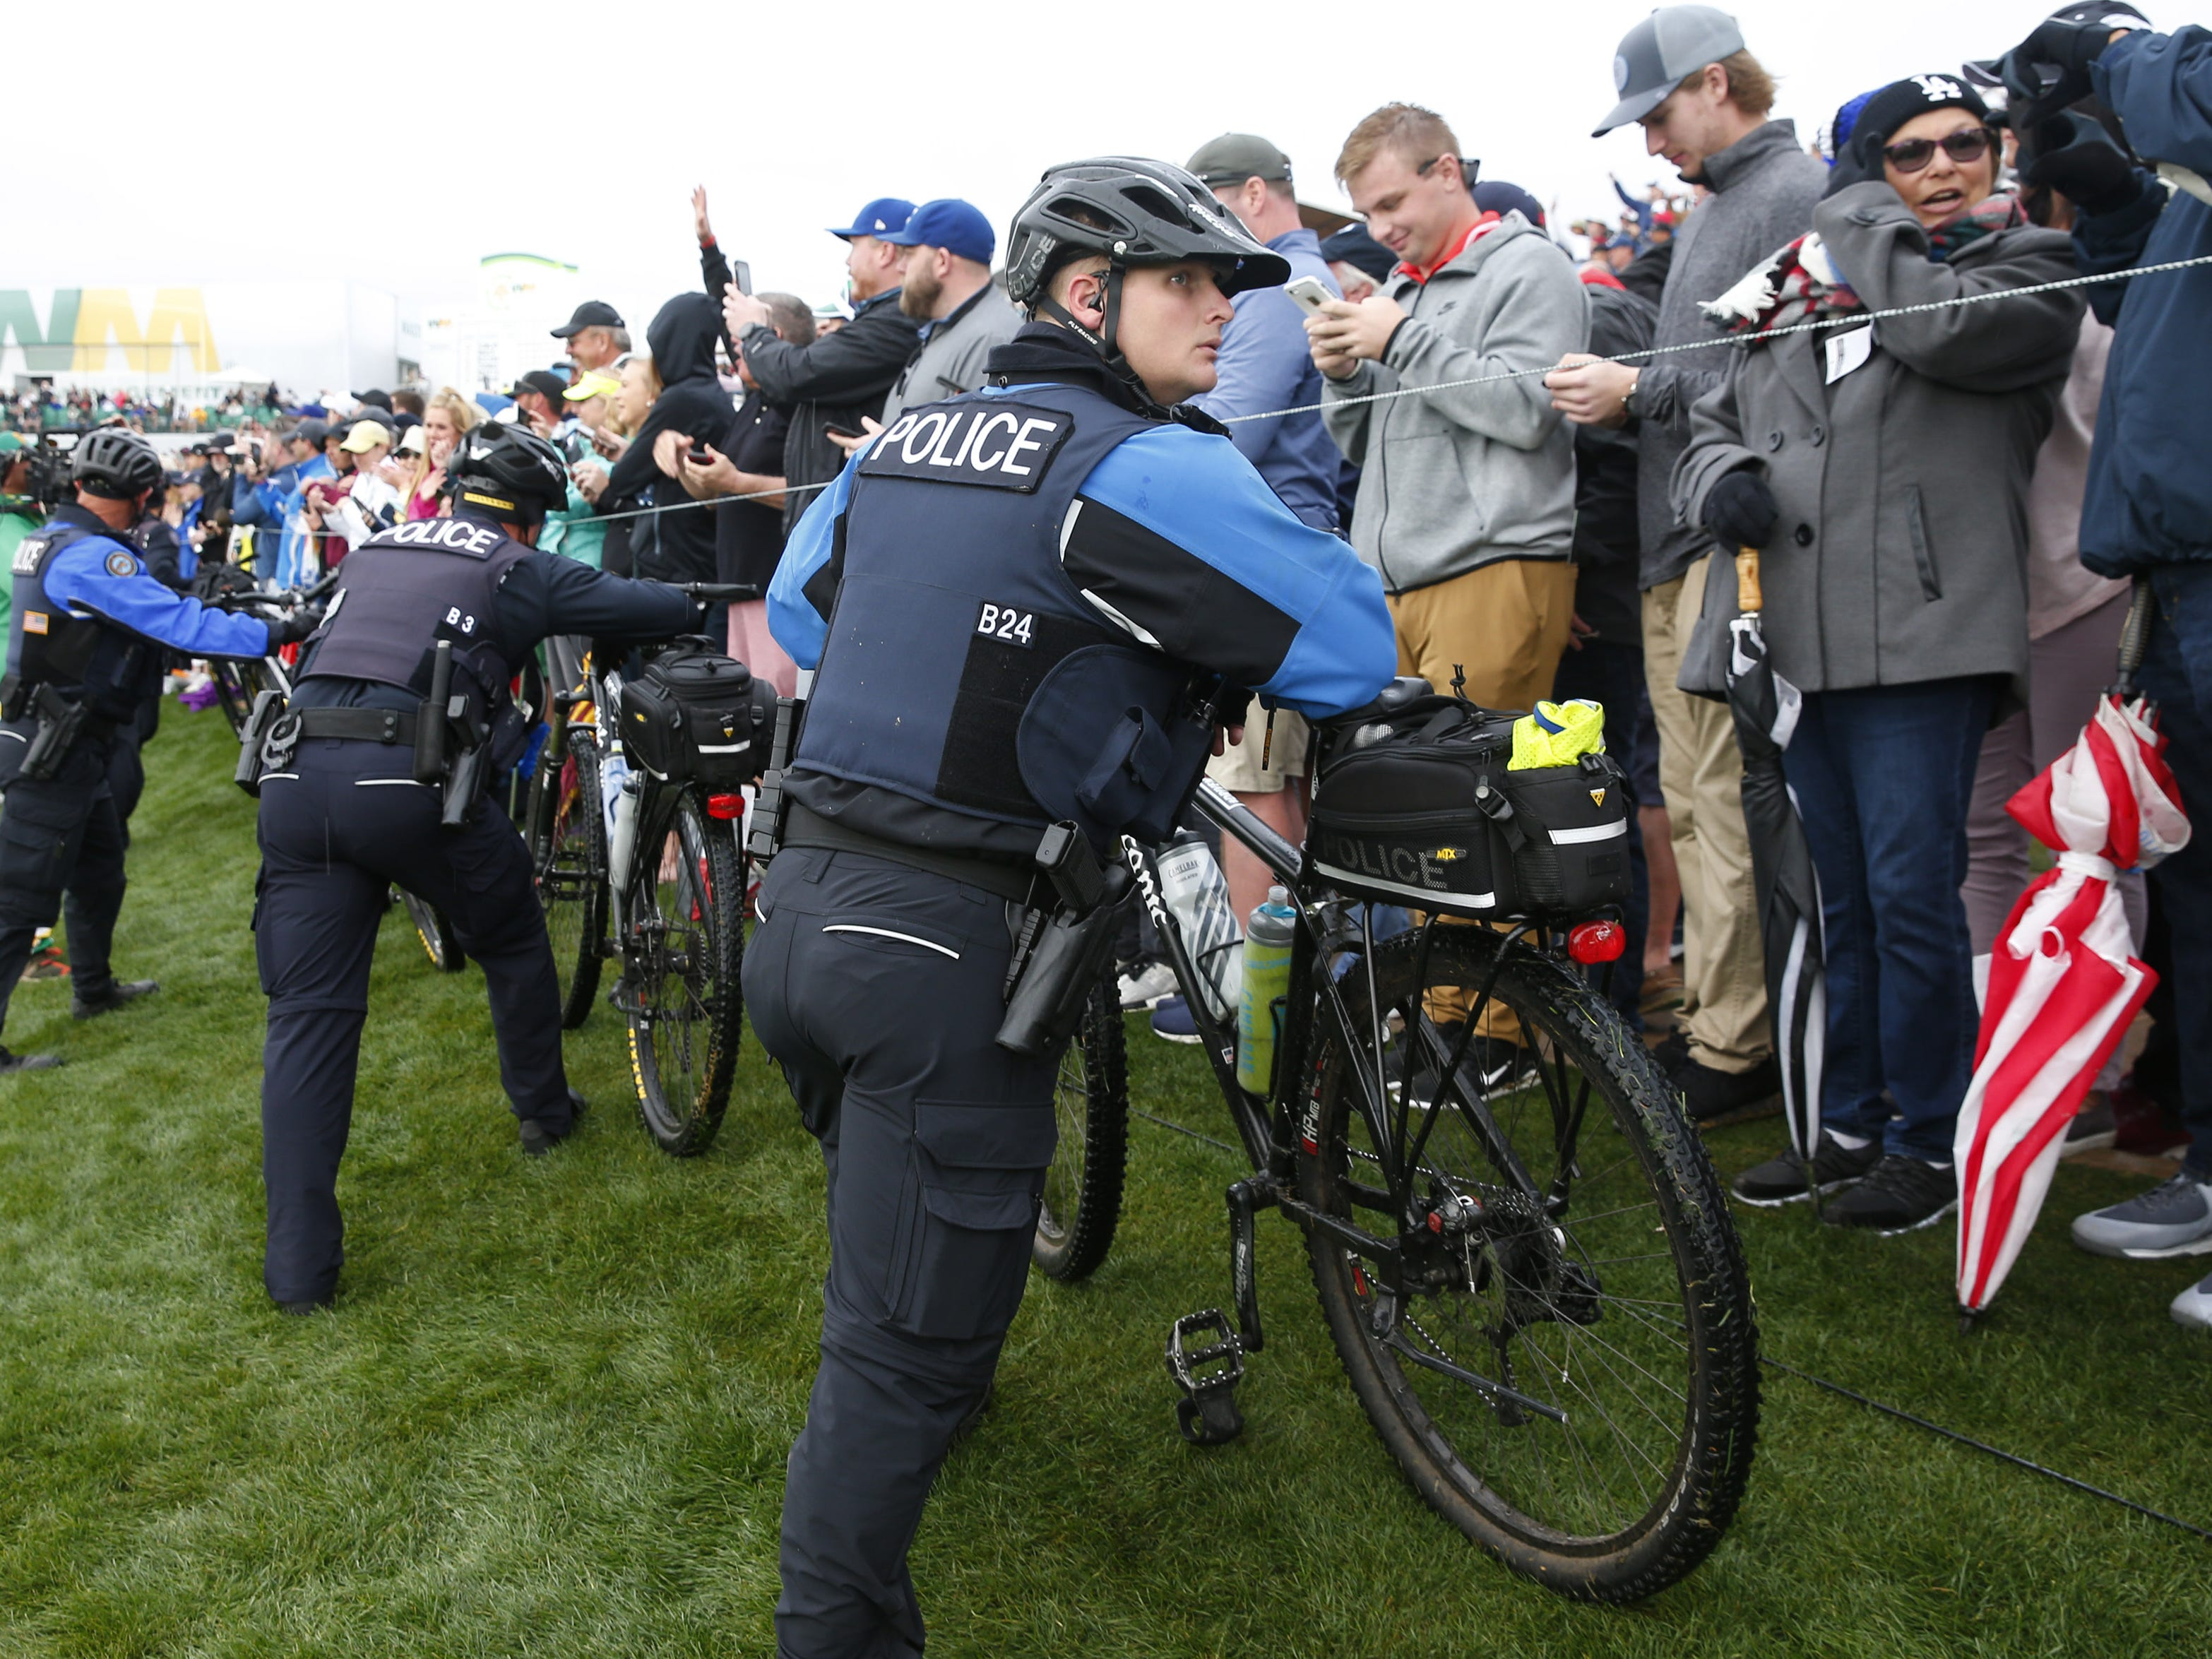 Police use bikes to create a barrier between fans and the leaders on the 18th hole during the final round of the Waste Management Phoenix Open at the TPC Scottsdale Feb. 3, 2019.